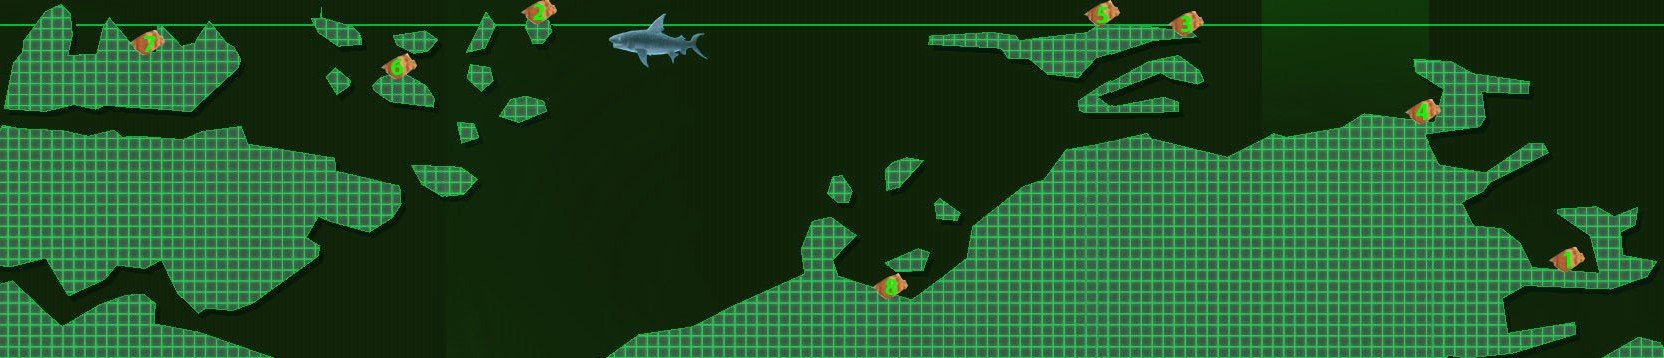 Hungry shark evolution win 8 walkthrough page 3 for Tiger strike fish game cheats